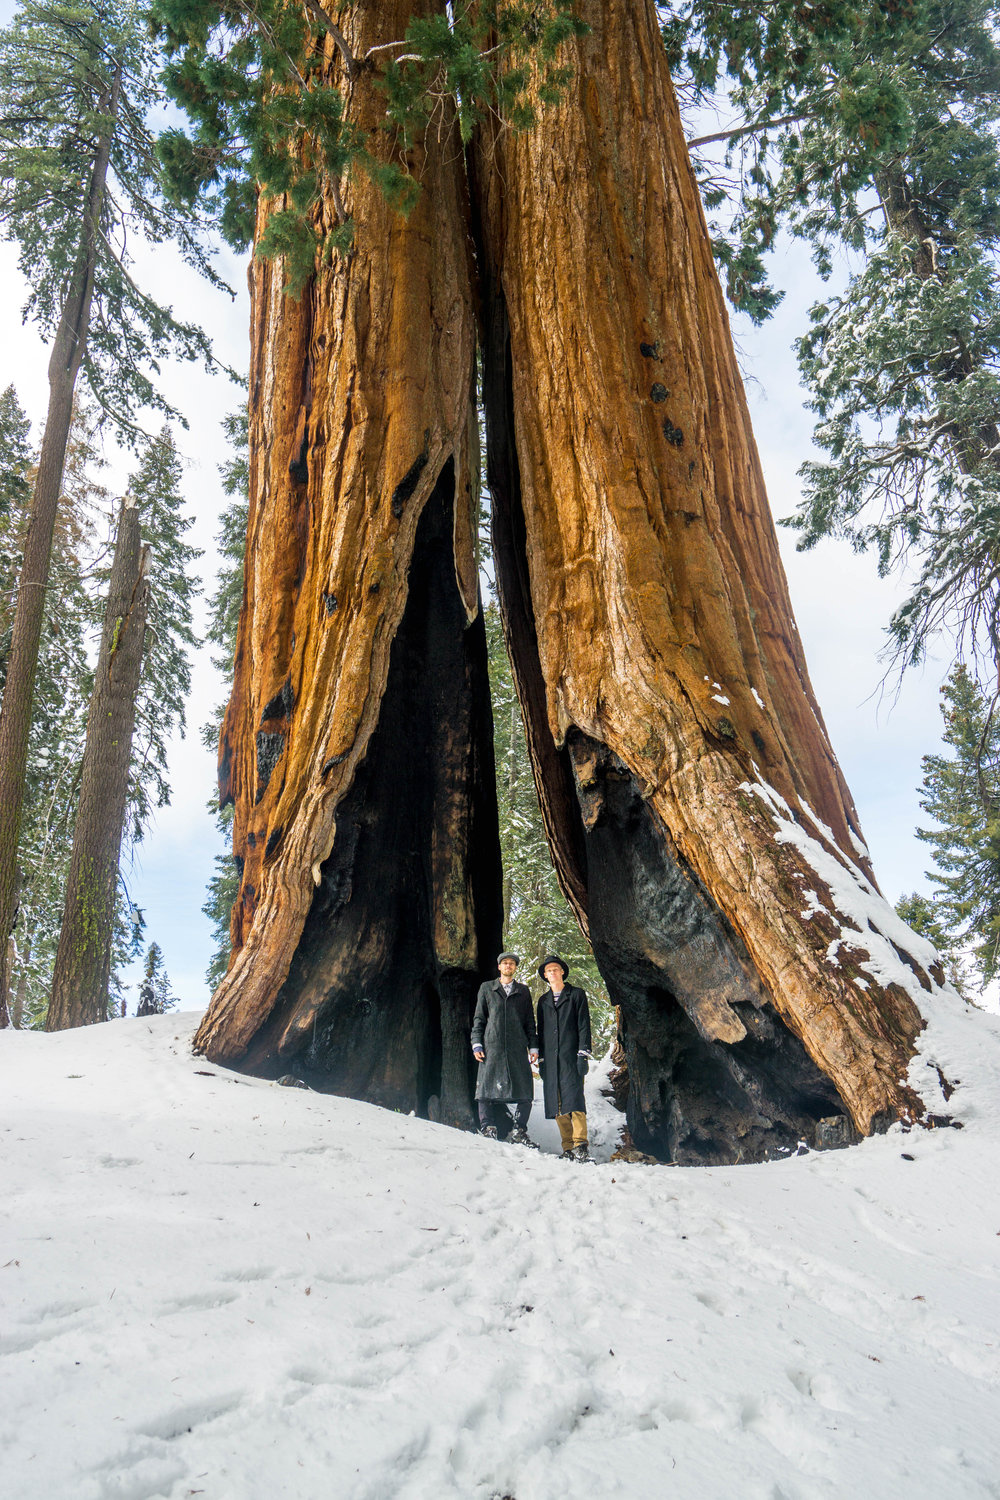 Example #1: Two monstrous side-by-side Sequoias sharing a massive fire scar. Even fire struggles to kill these trees. Almost like nothing happened, they keep growing.